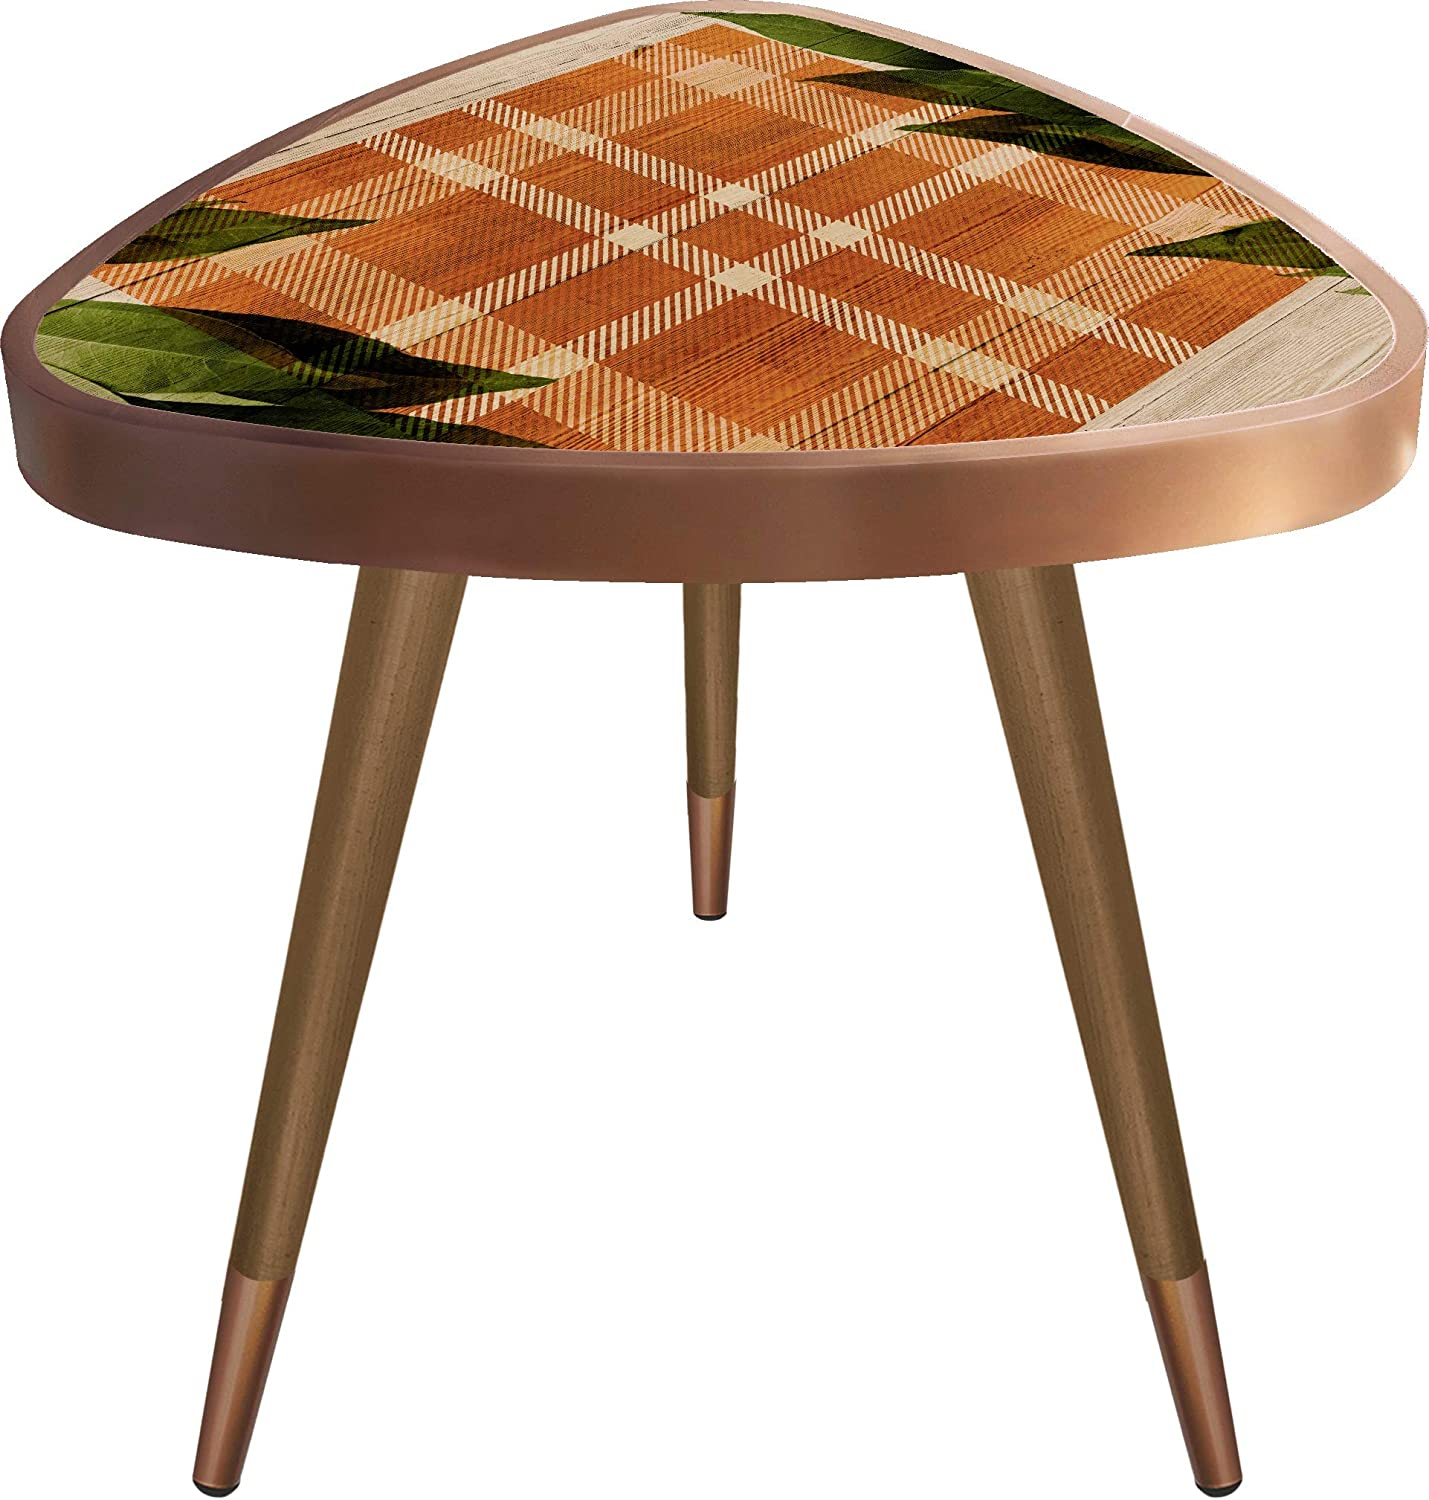 orange Plaid and Leaves Print Triangle Wooden Design Vintage,Retro, Mid-Century Modern Design Wooden Coffee Table, Cocktail Table for Living Room, Bedroom or Home Office